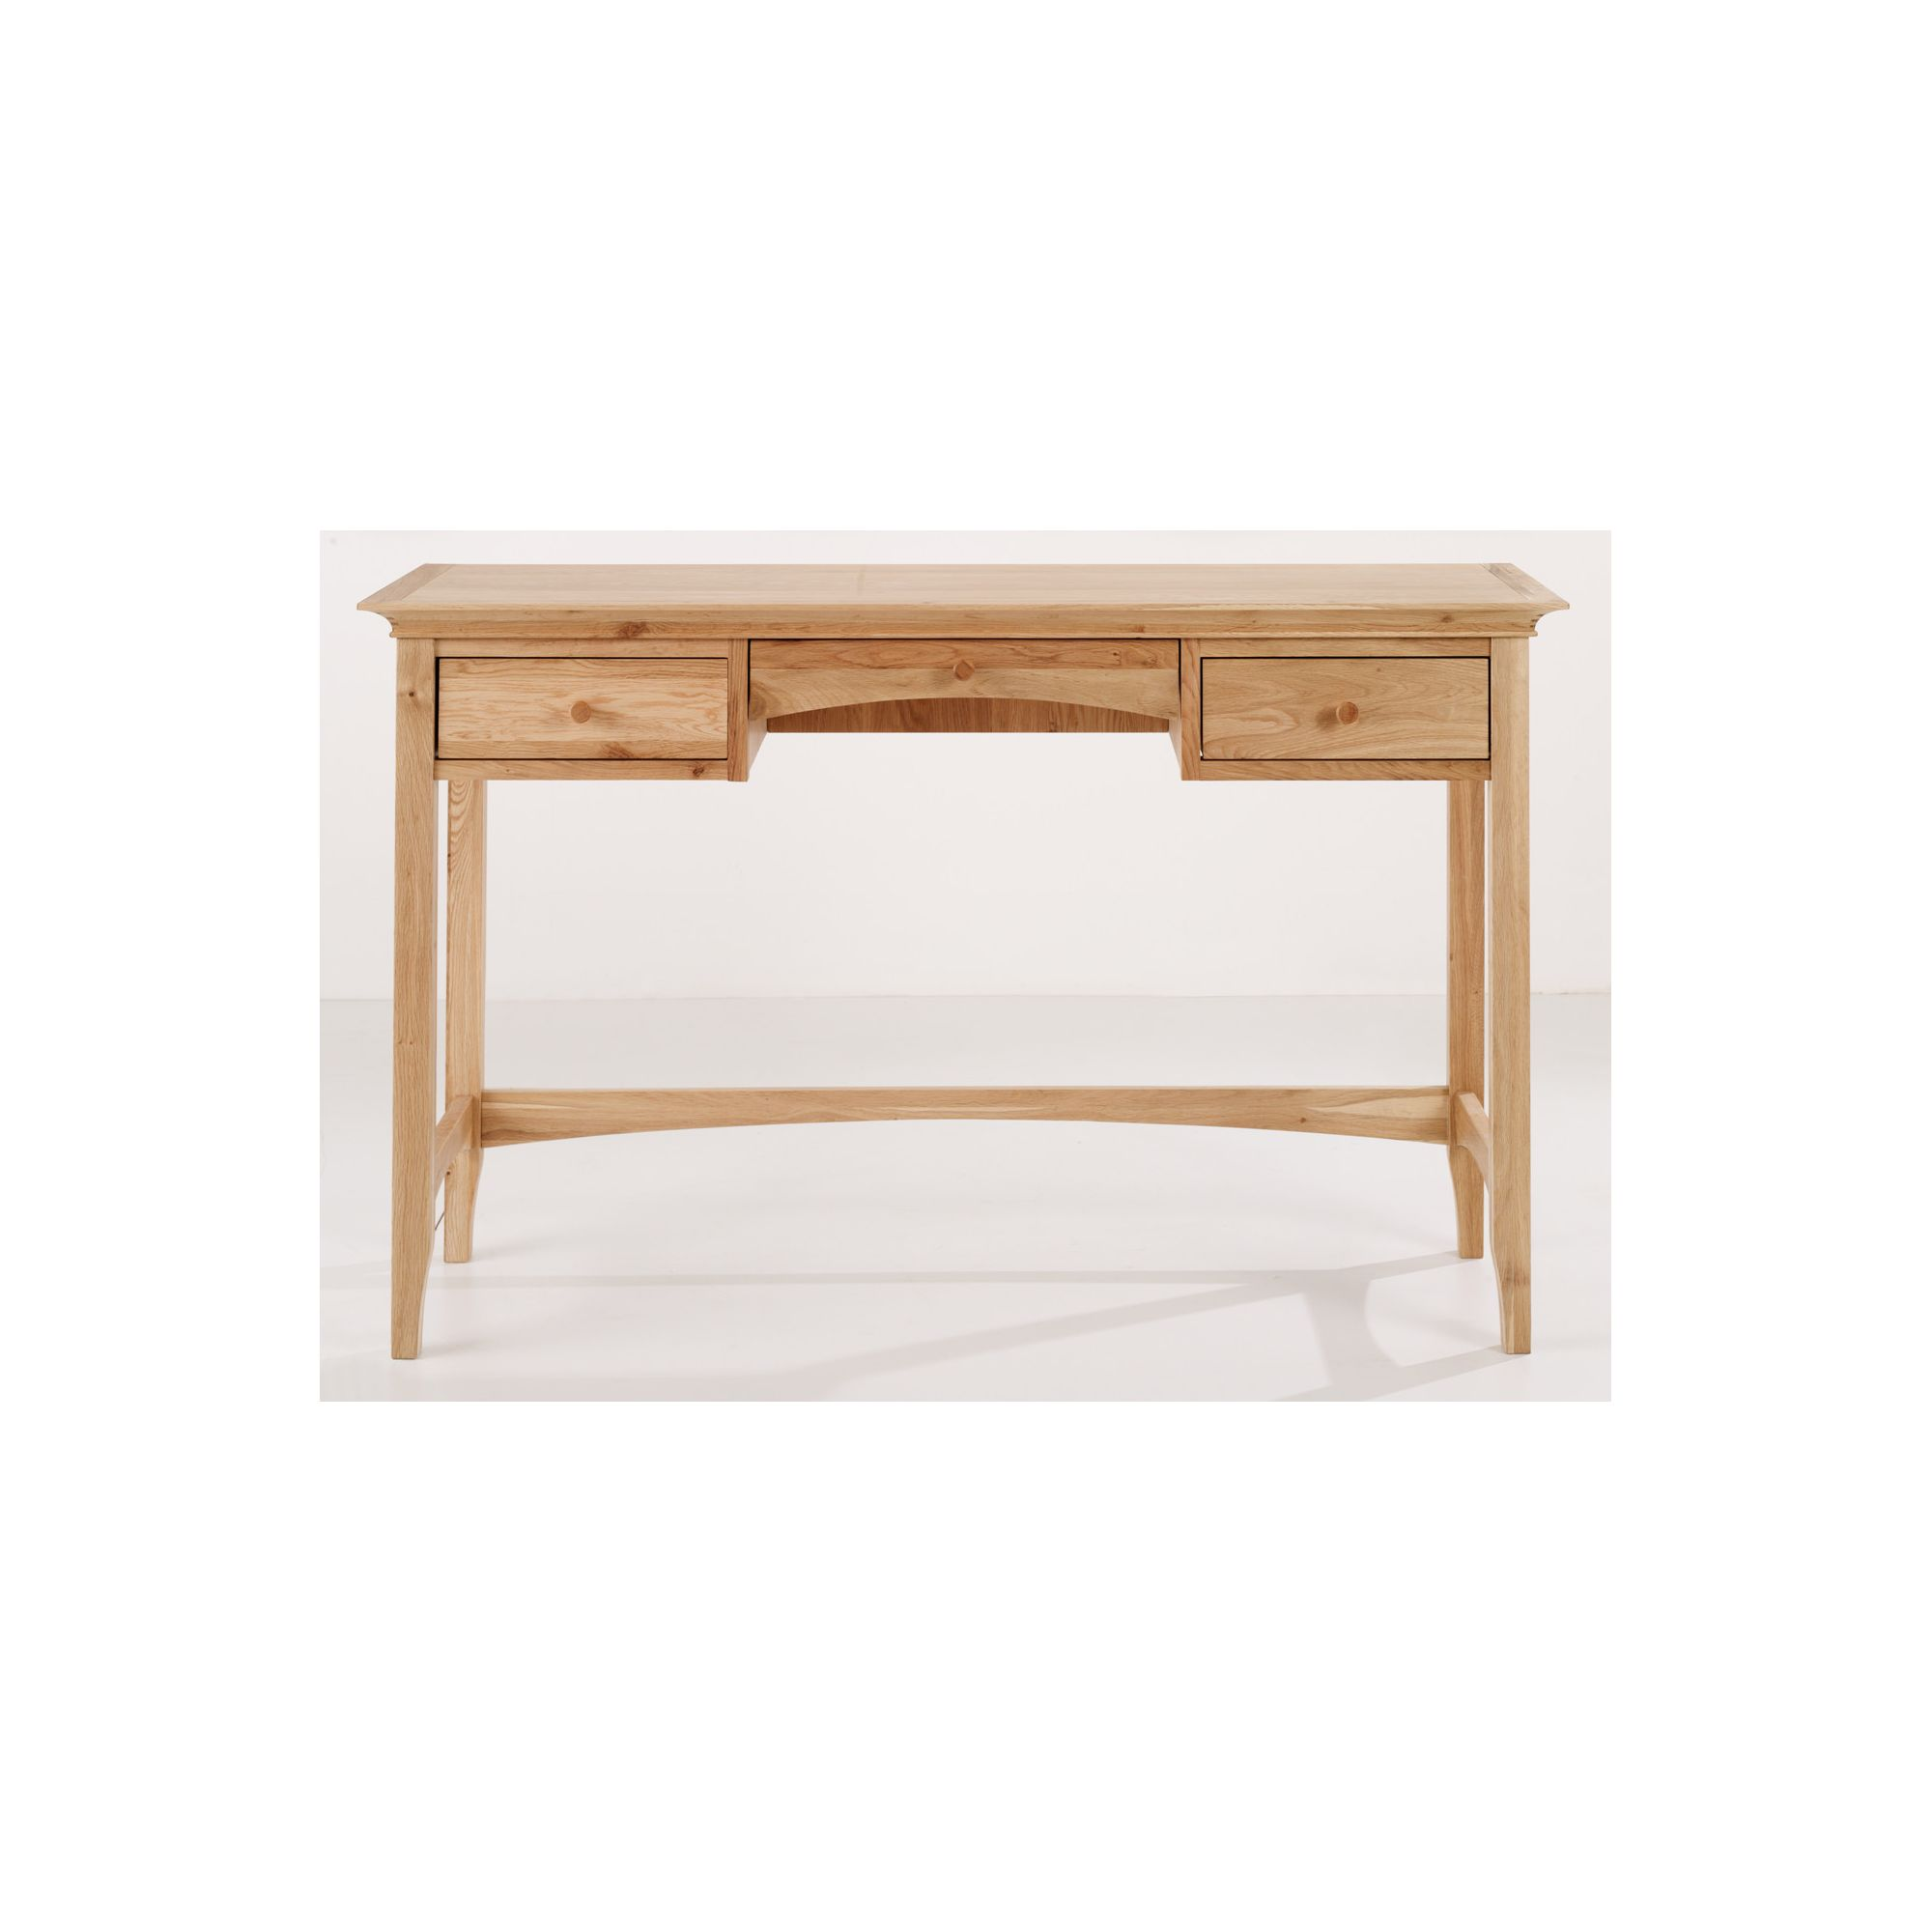 Originals Hudson Dressing Table at Tesco Direct